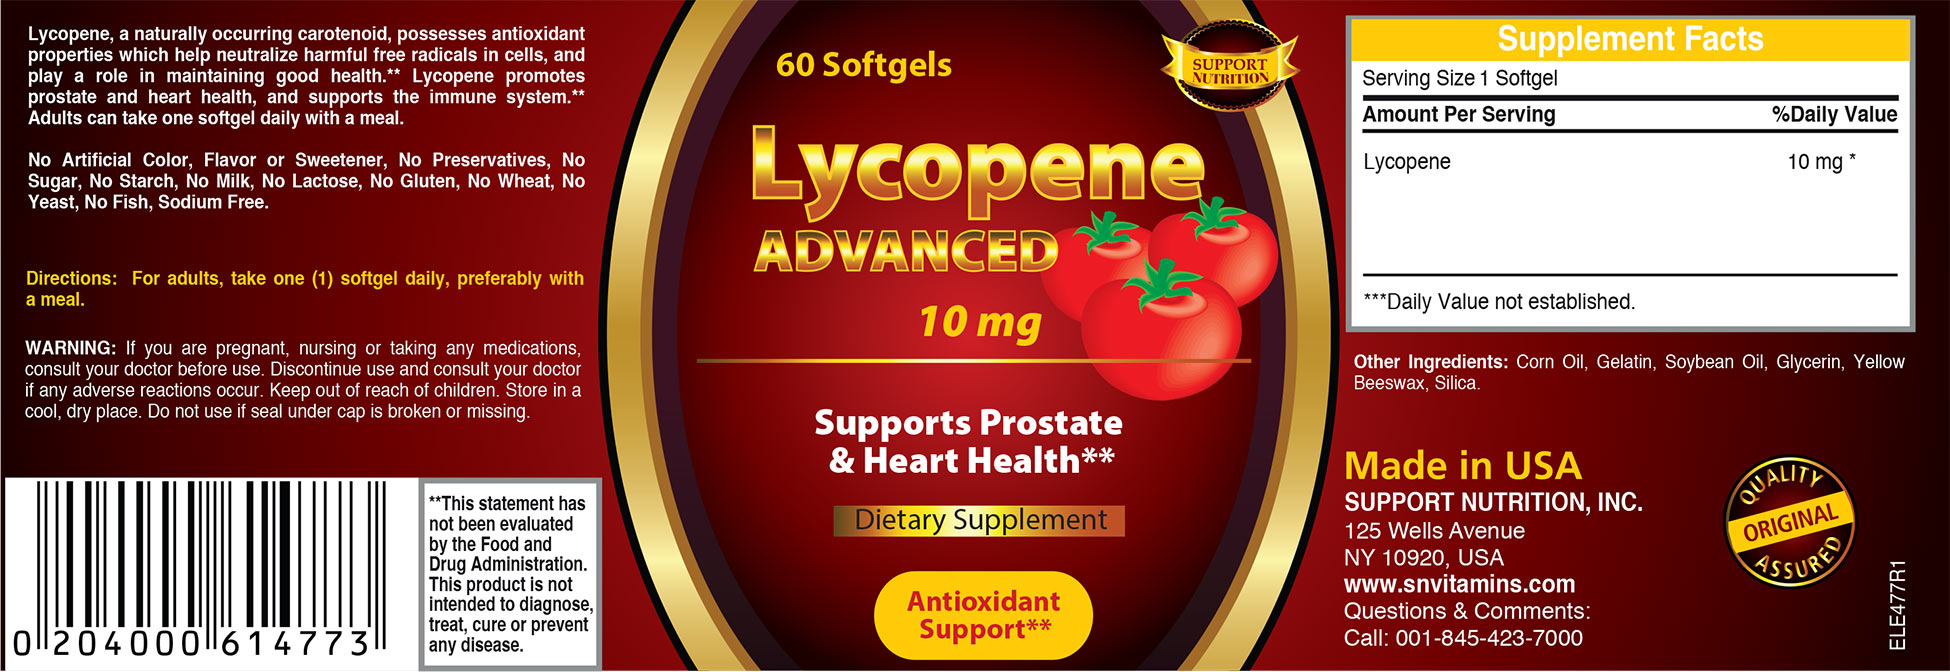 Lycopene Advanced